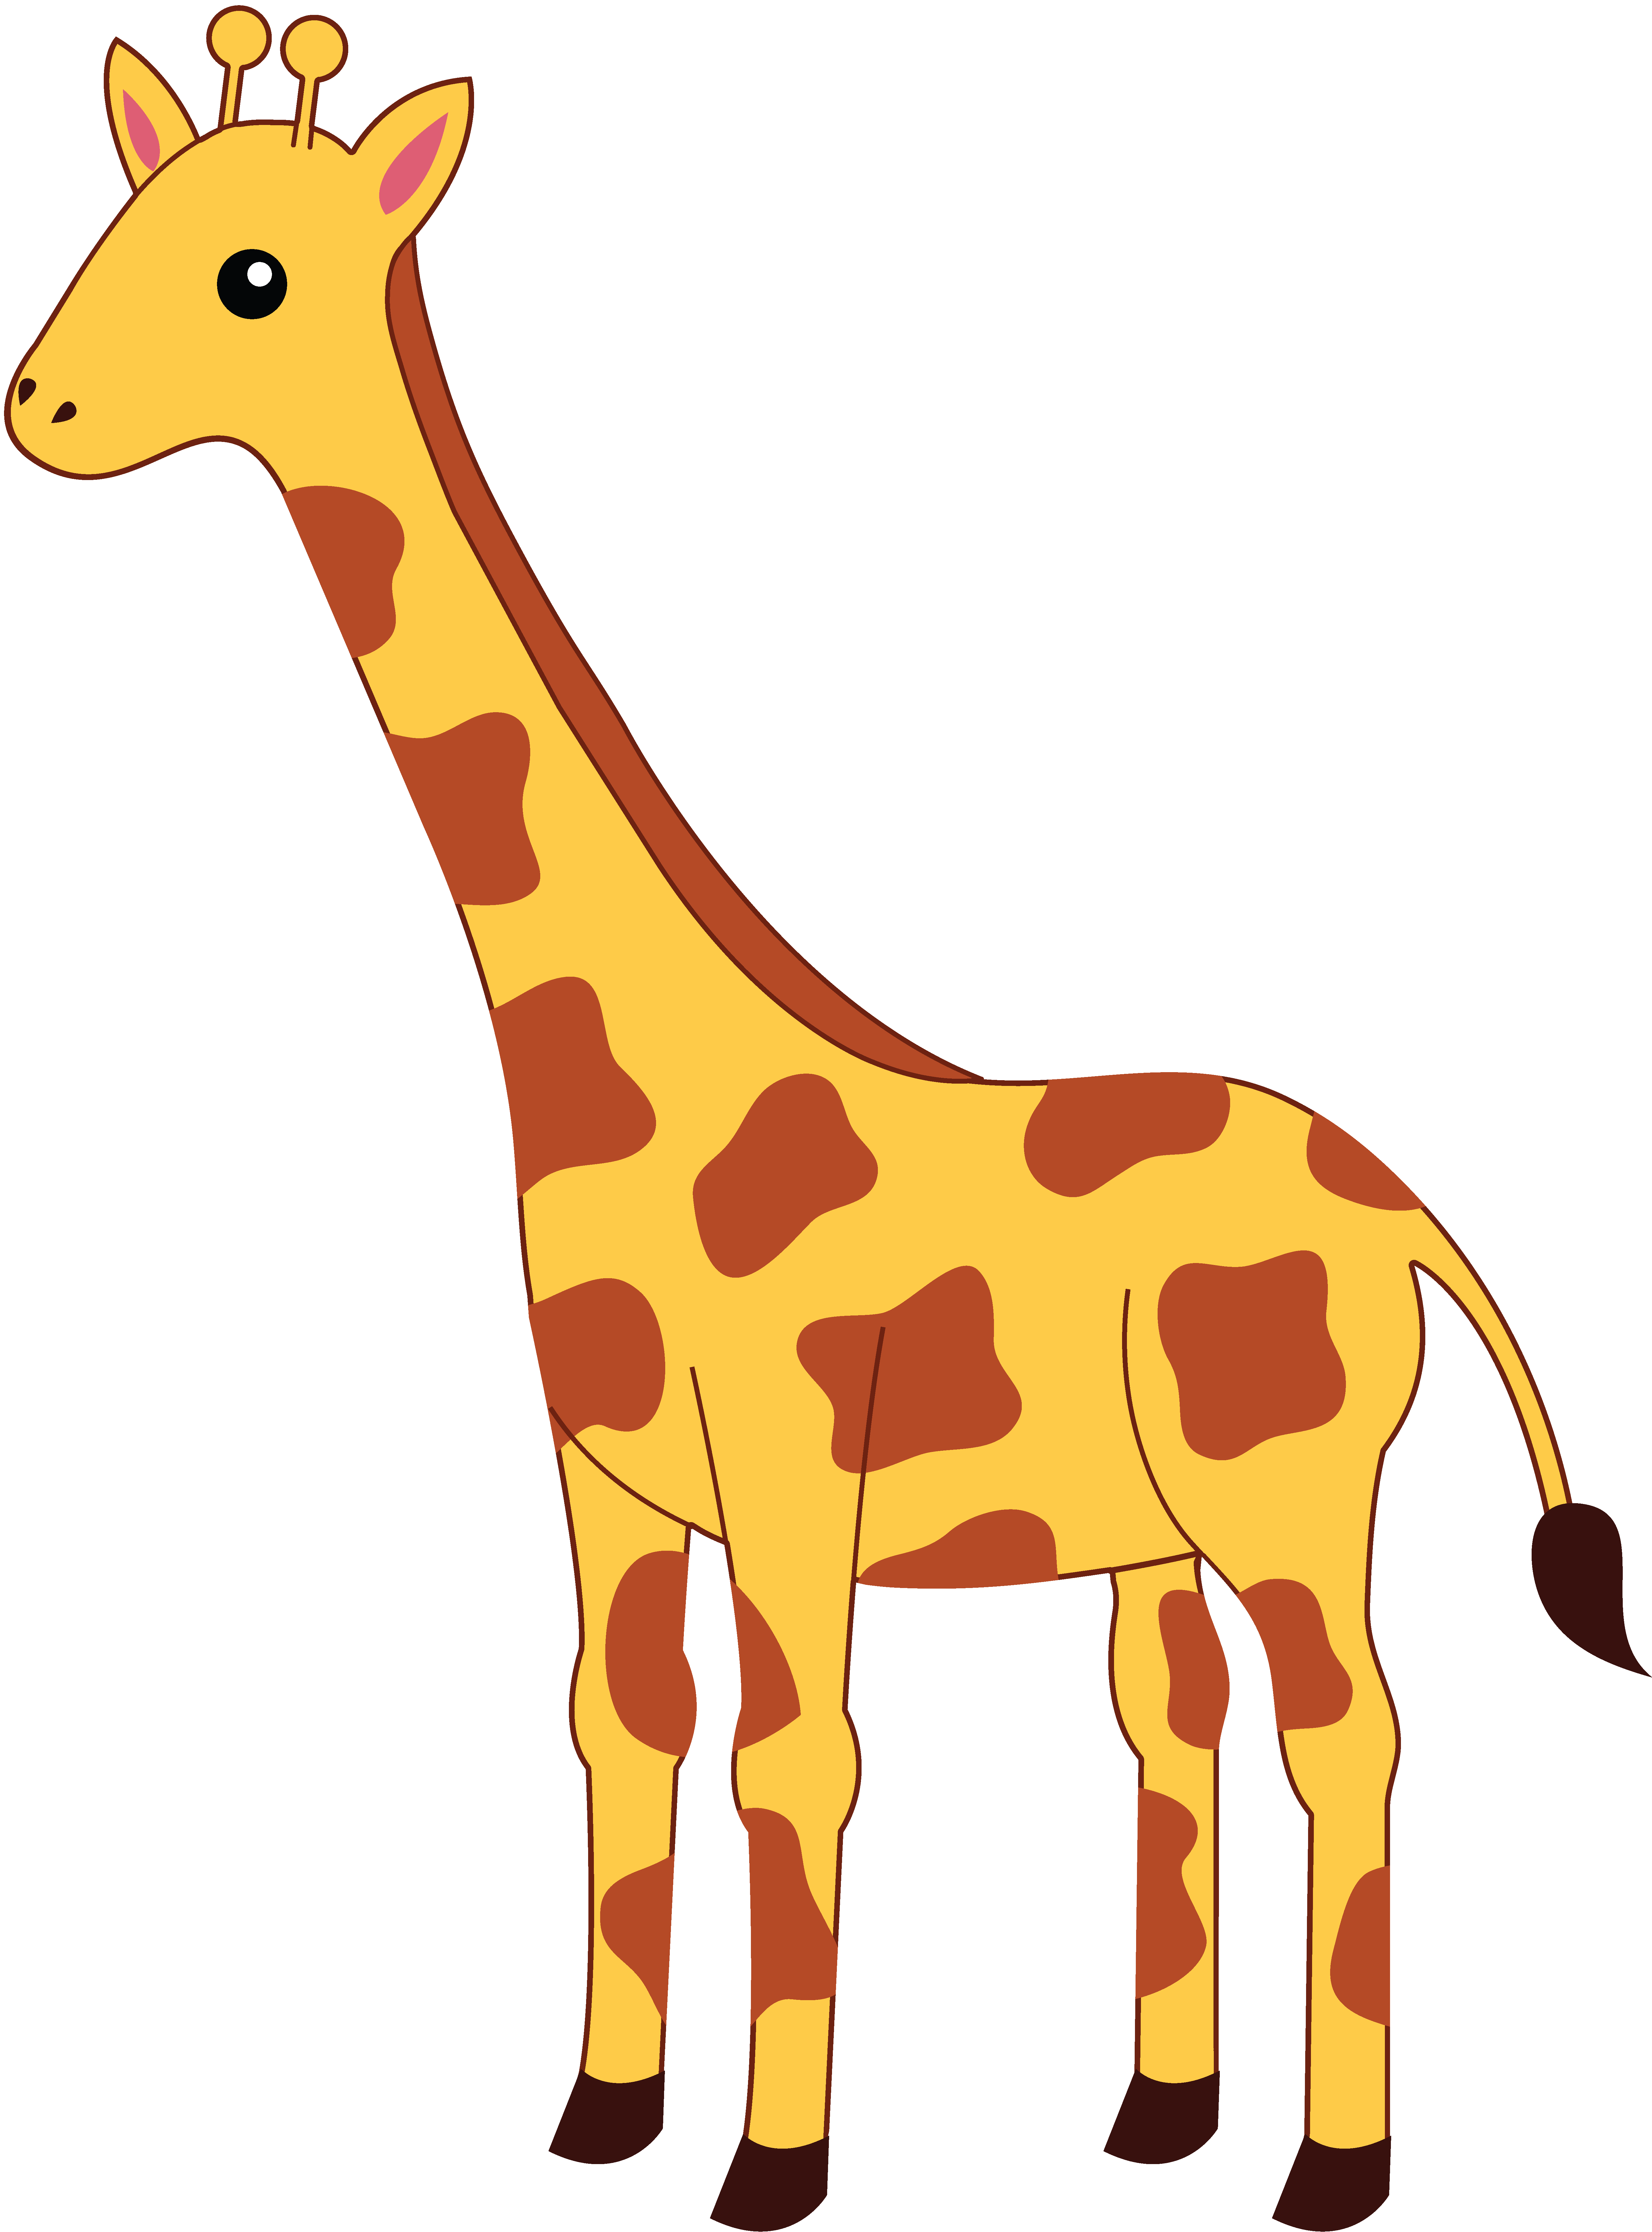 Spotted Yellow Giraffe.